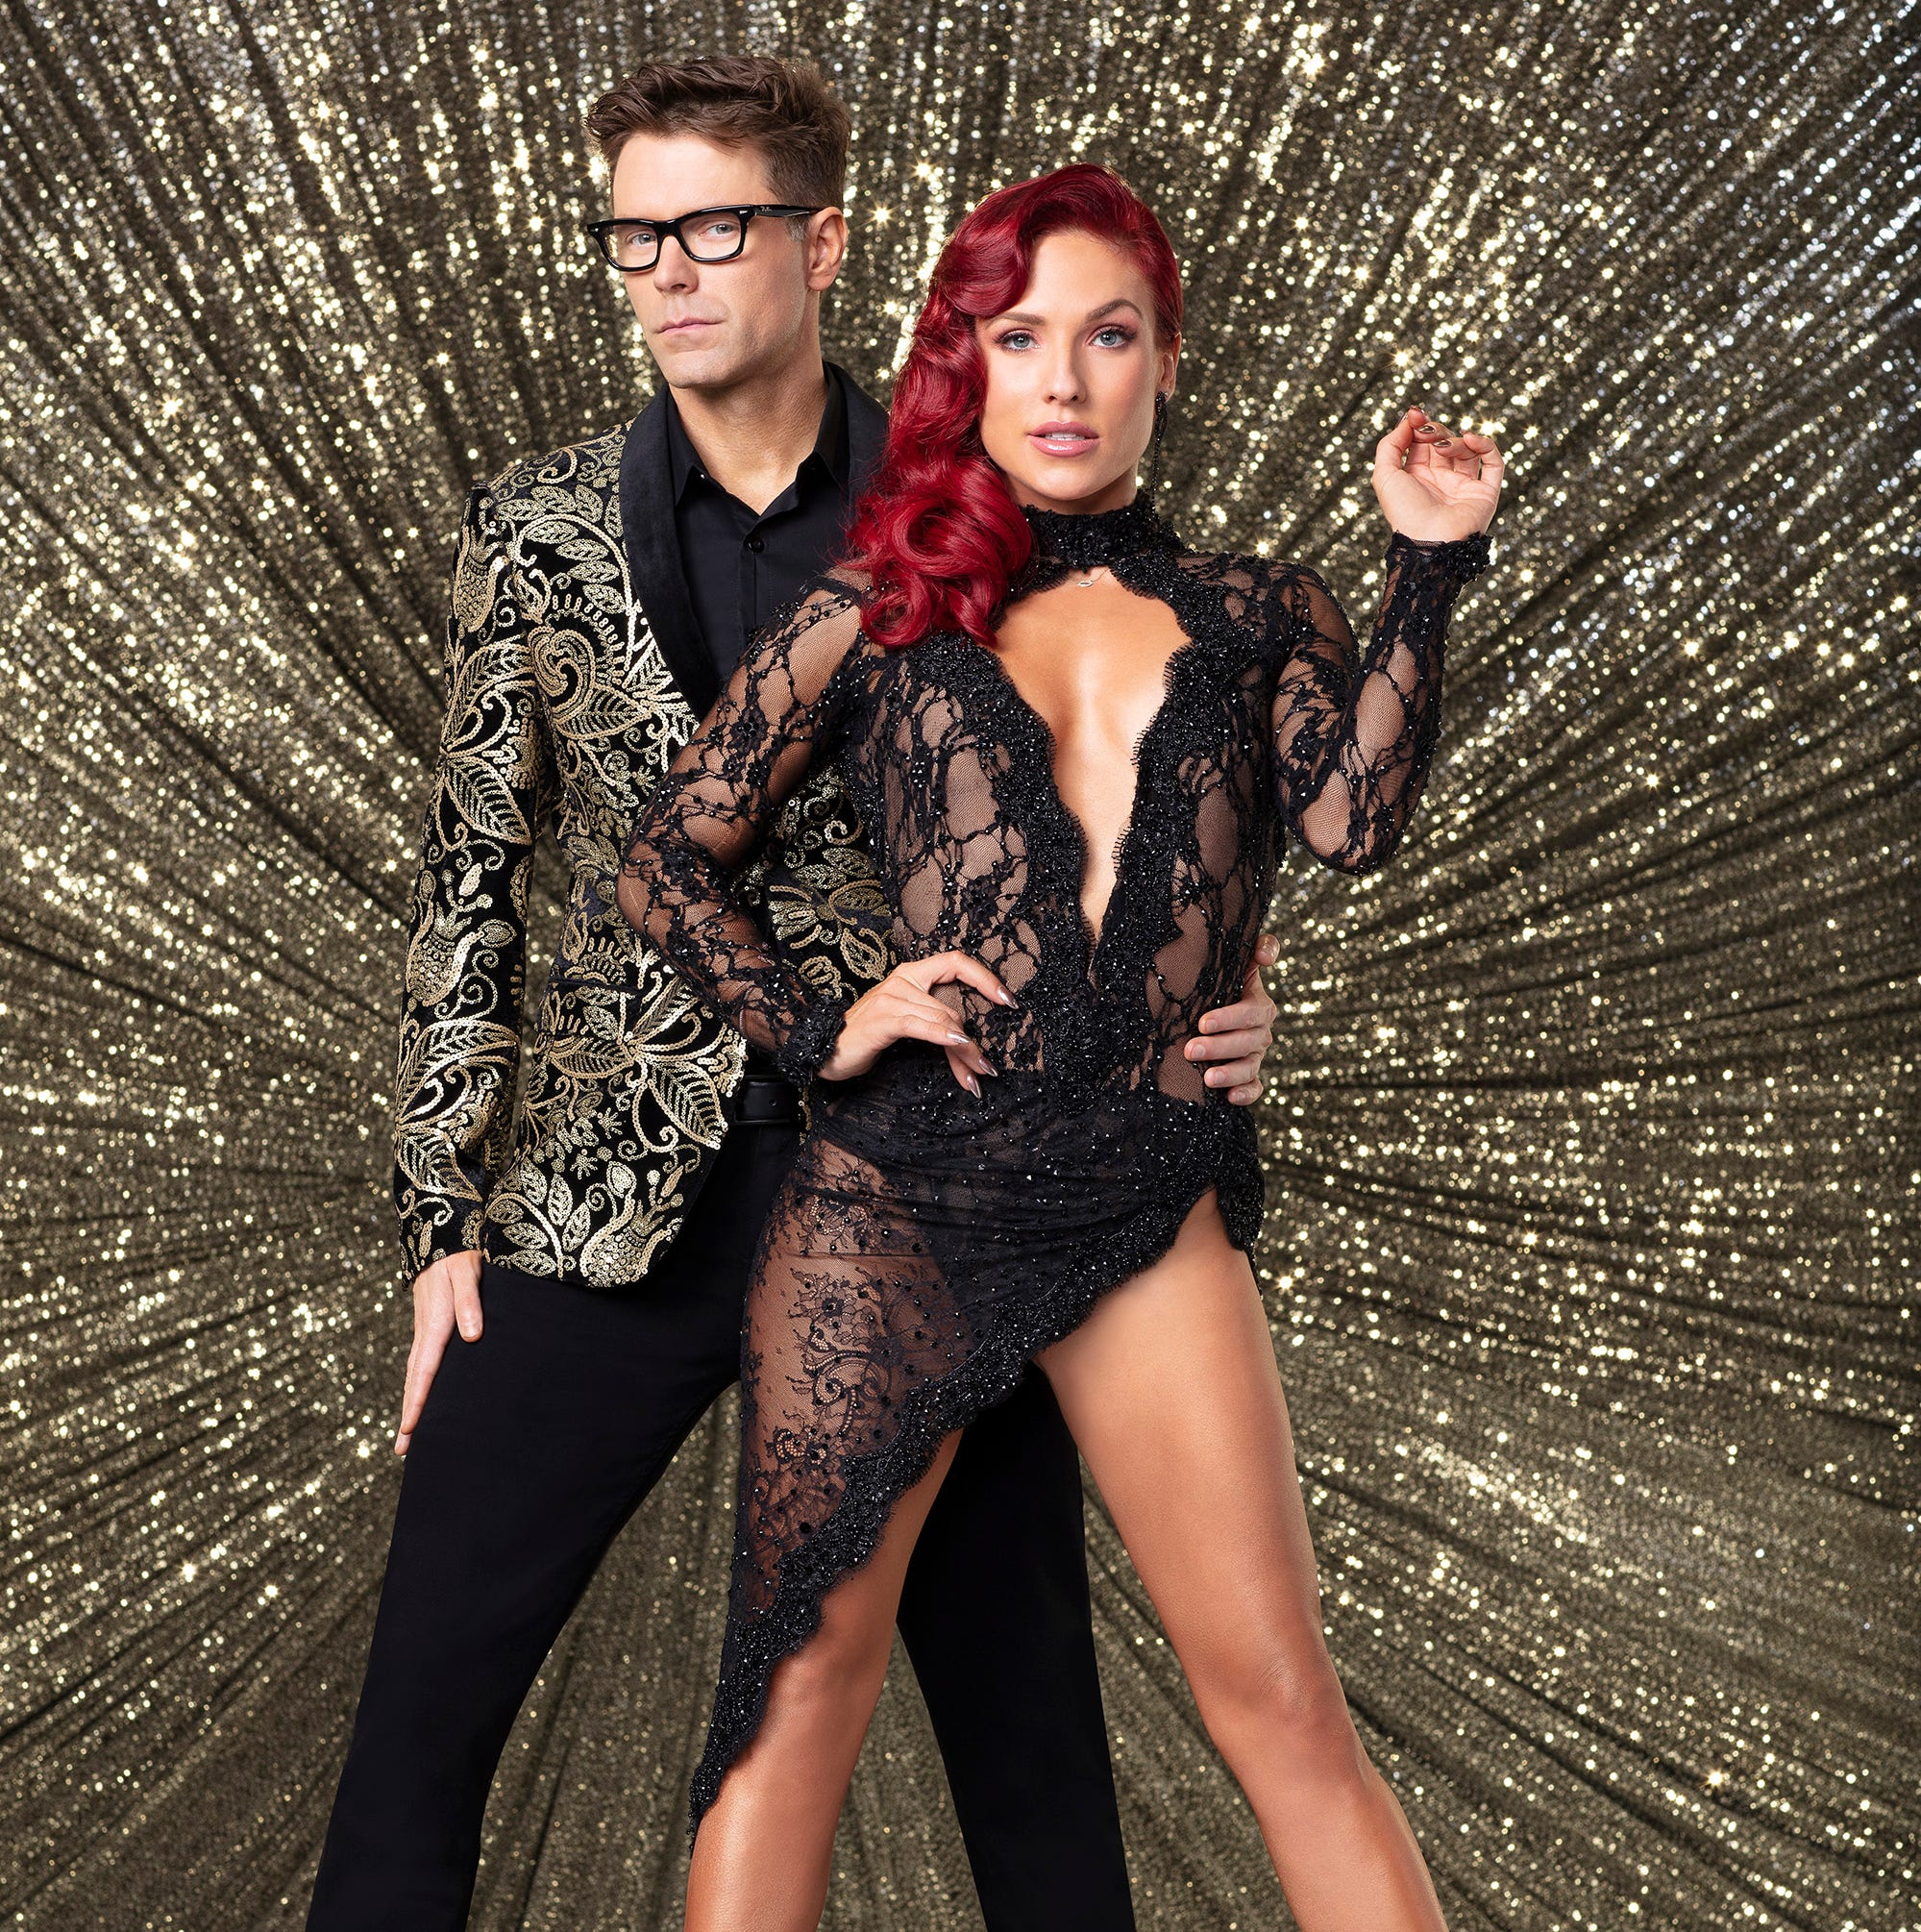 Bobby Bones on 'Dancing with the Stars': Did he stay or did he go?